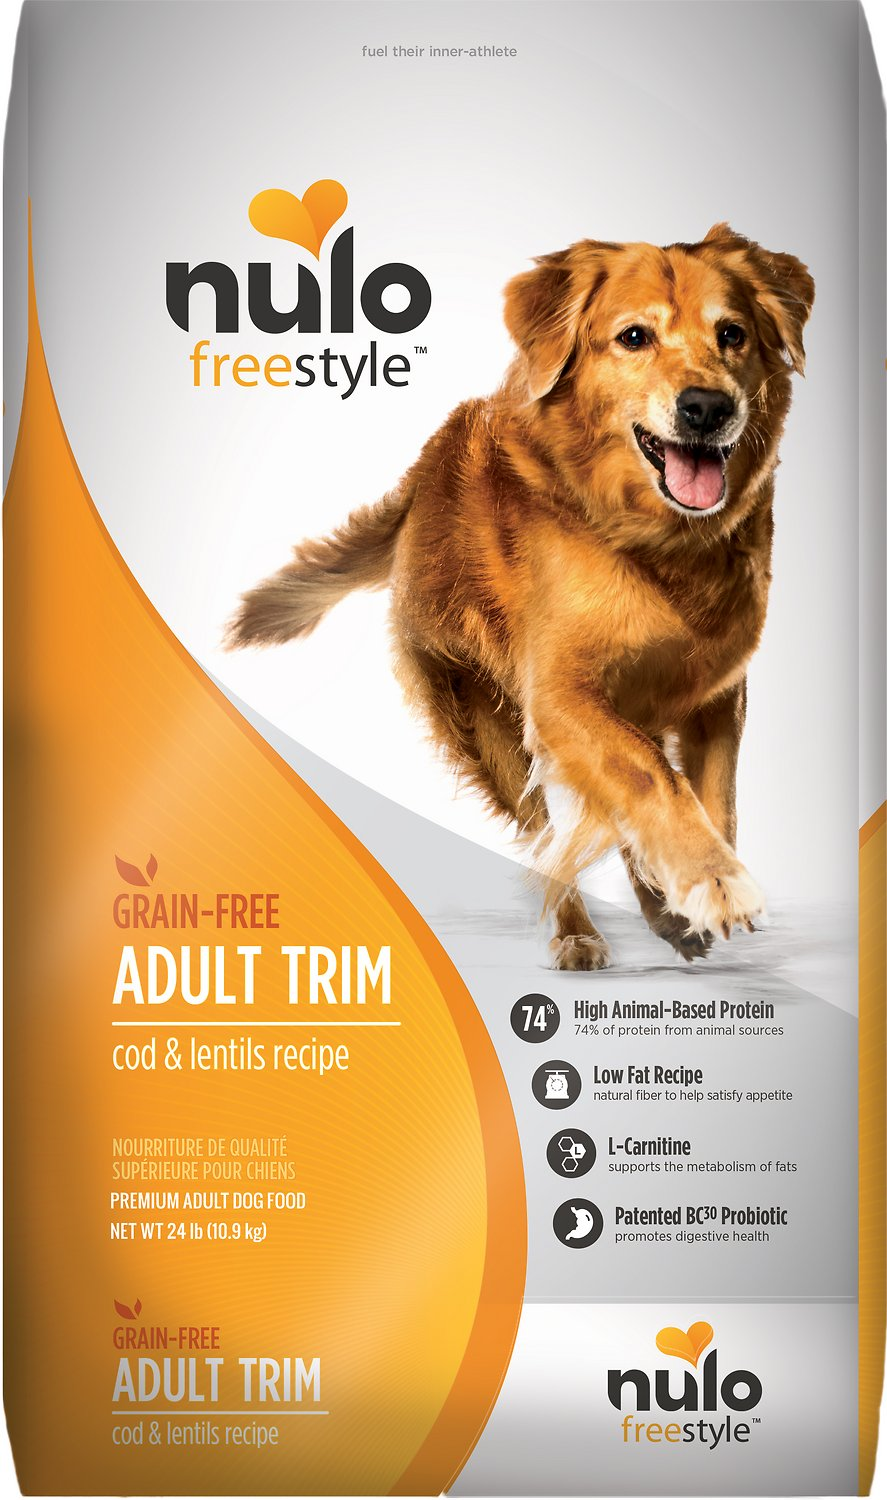 Nulo Dog Freestyle Cod & Lentils Recipe Grain-Free Adult Trim Dry Dog Food Image